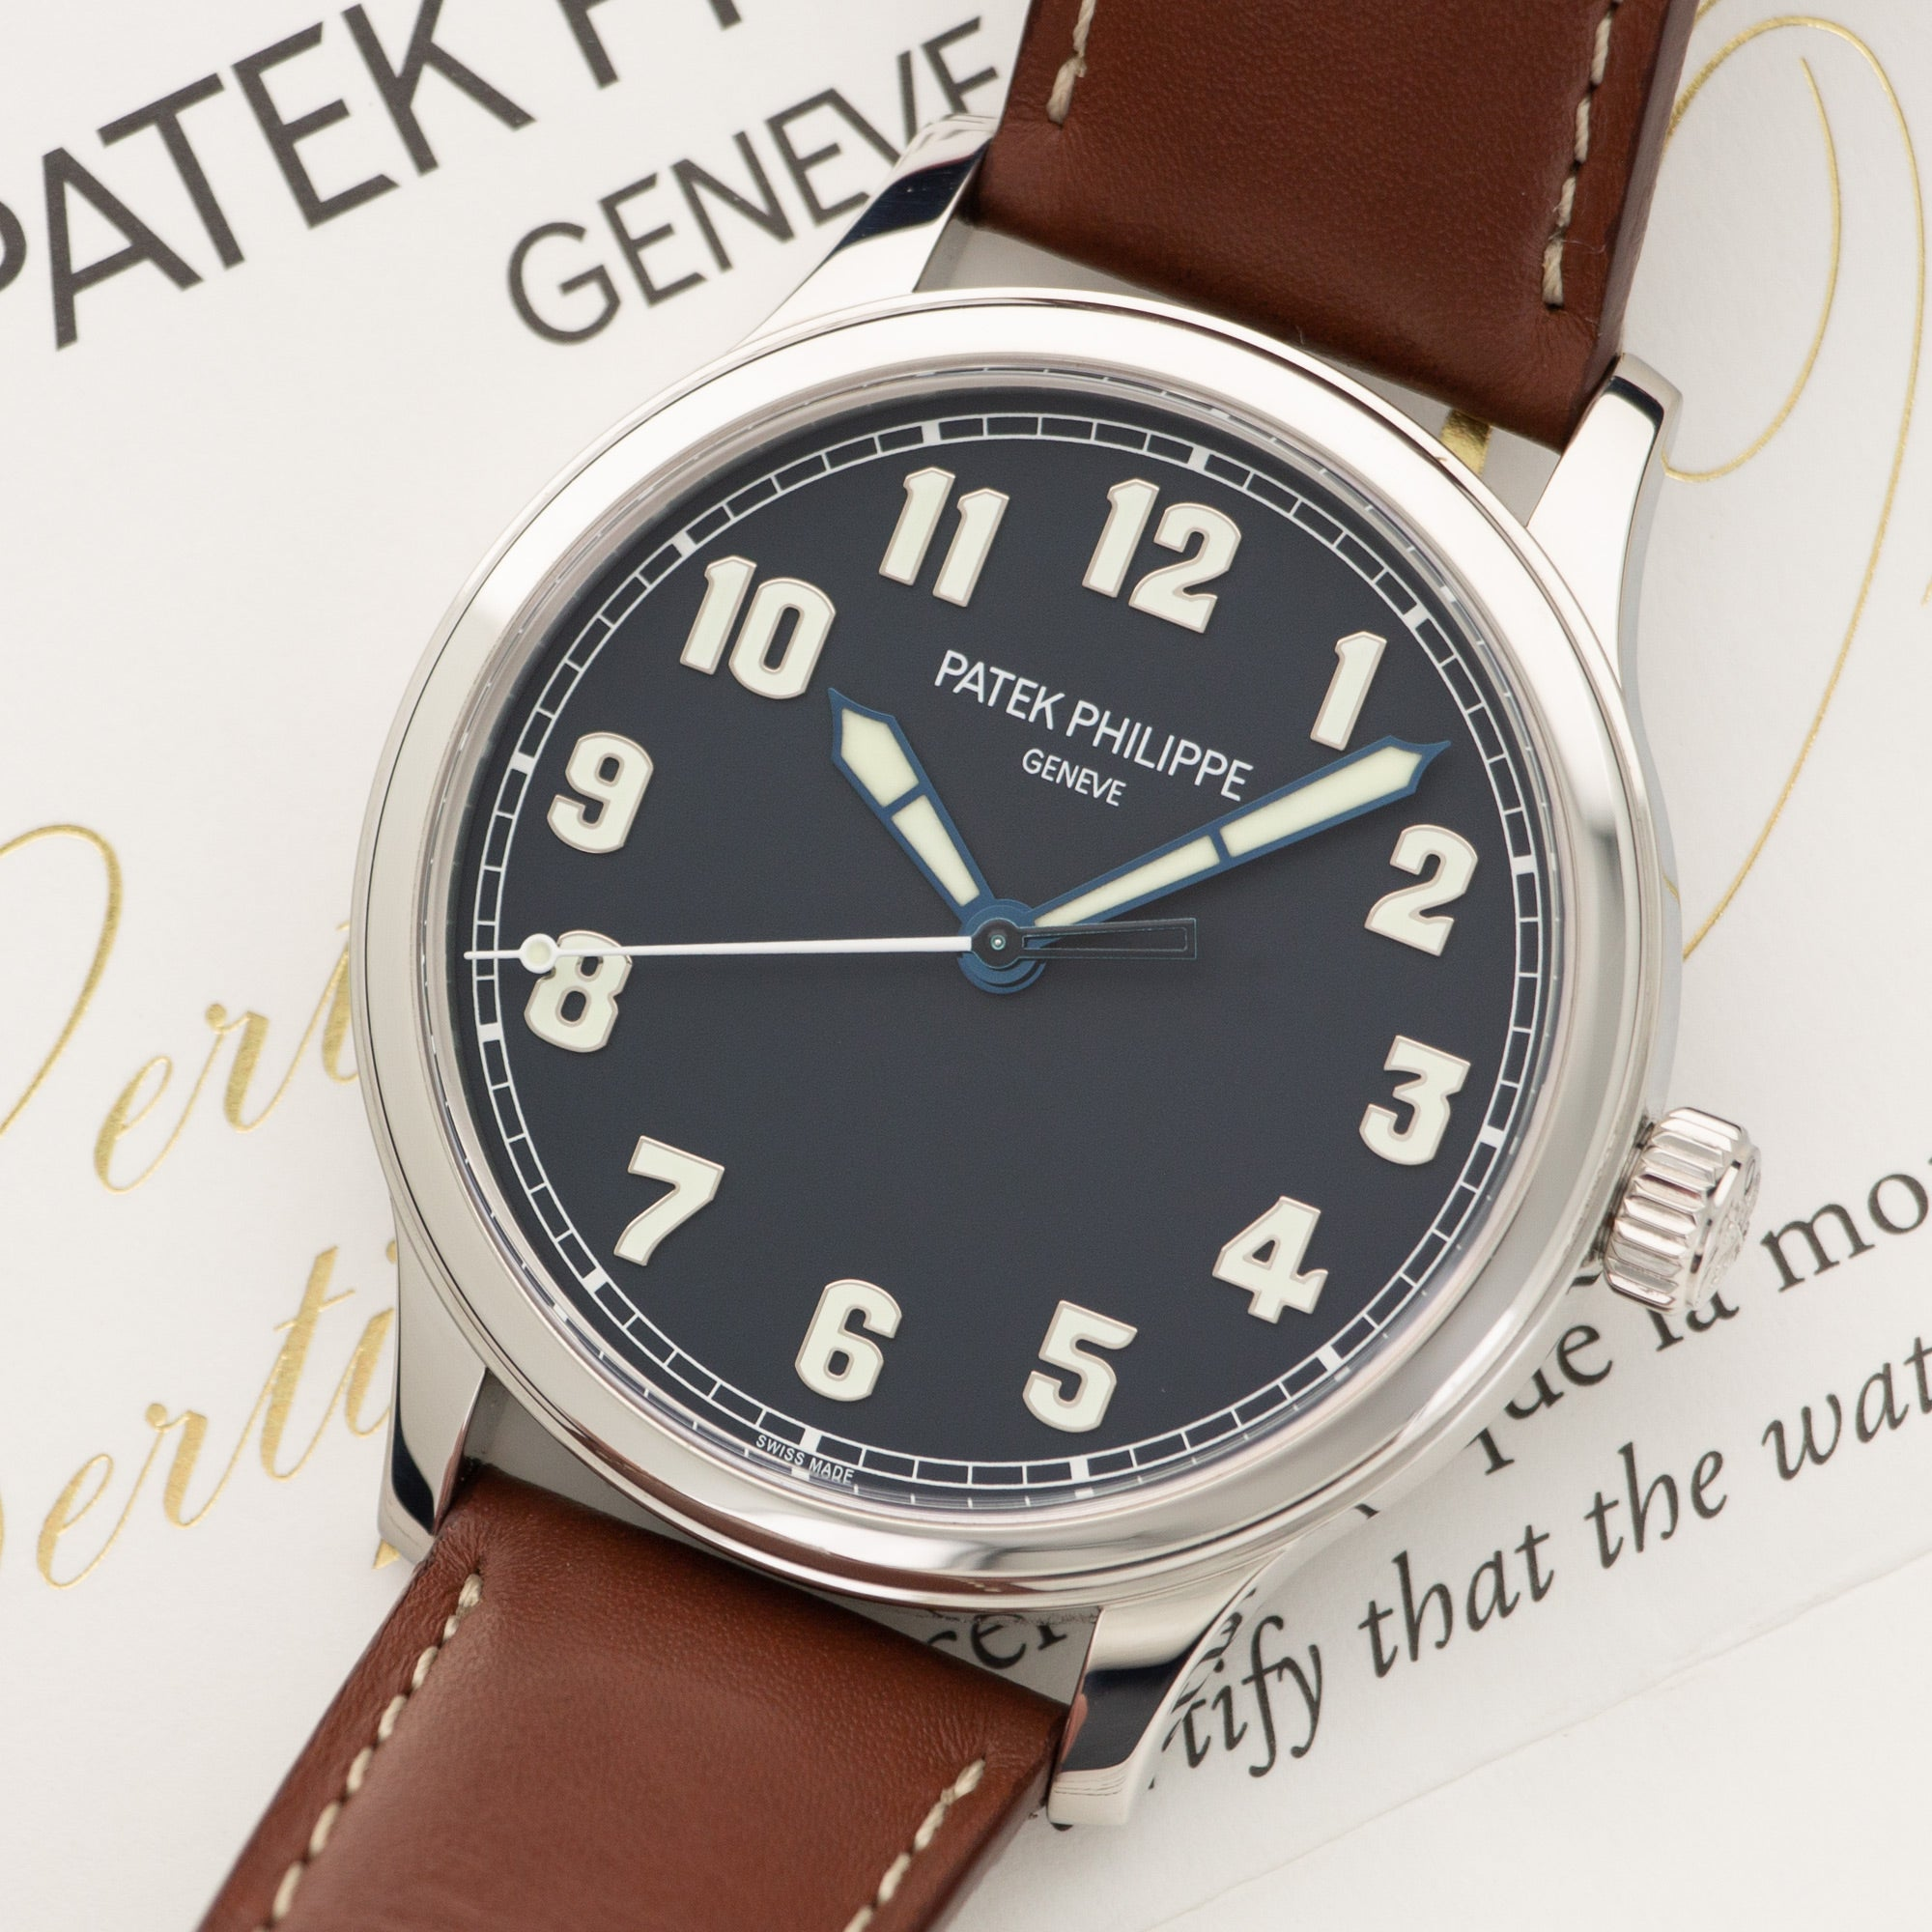 Patek Philippe Pilot 5522A-001 Steel  Likely Never Polished, Original Finish Gents Steel Blue 42mm Automatic 2017 Brown Calf Leather Original Box and Certificate